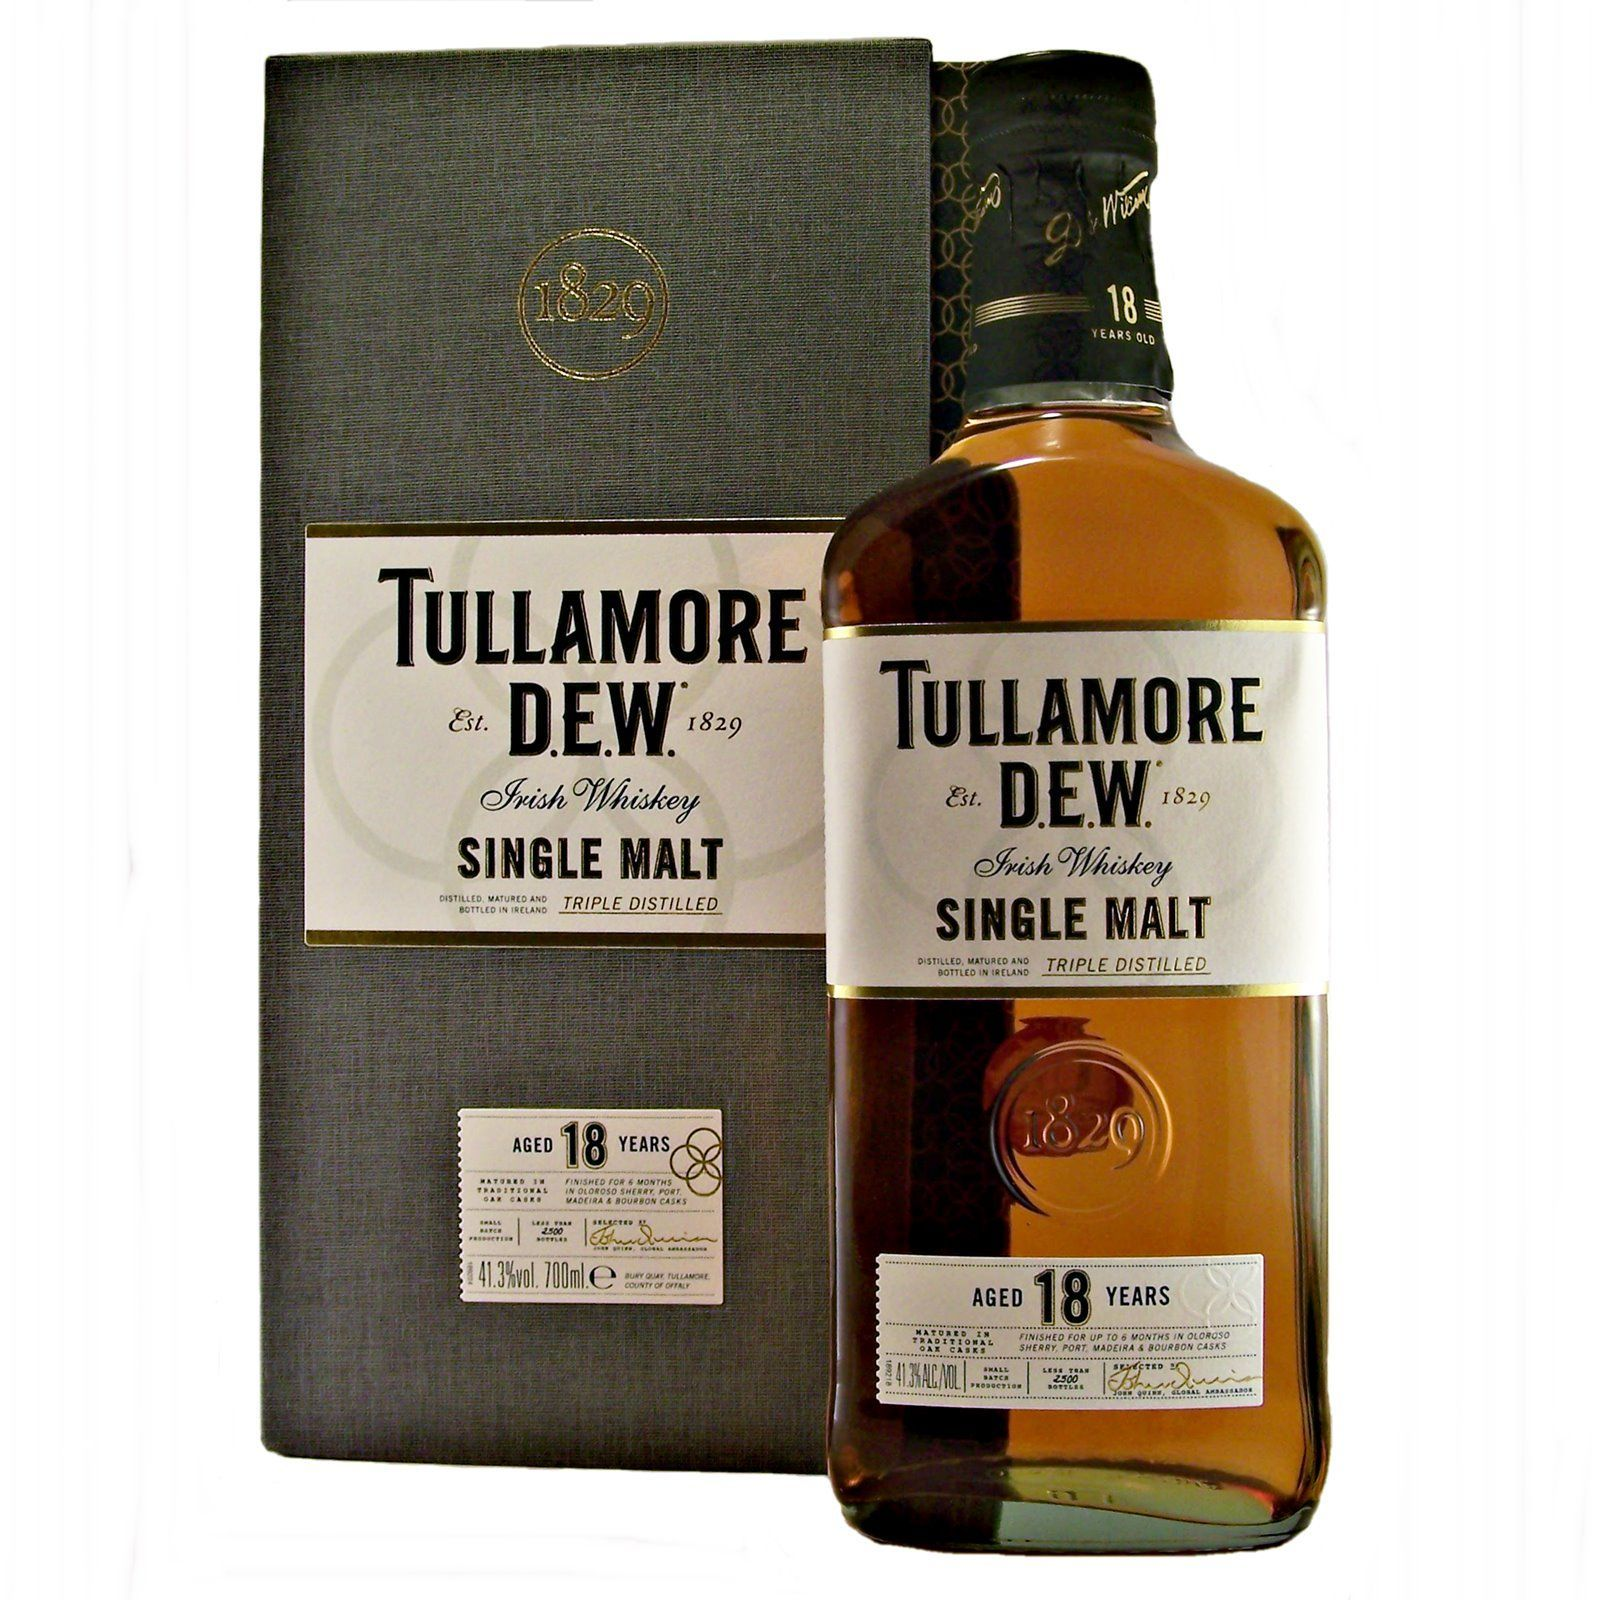 Tullamore 18 Year Old Single Malt Irish Whiskey Limited Edition Available To Buy Online At Specialist Whisky Sh Whiskey Irish Whiskey Single Malt Irish Whiskey